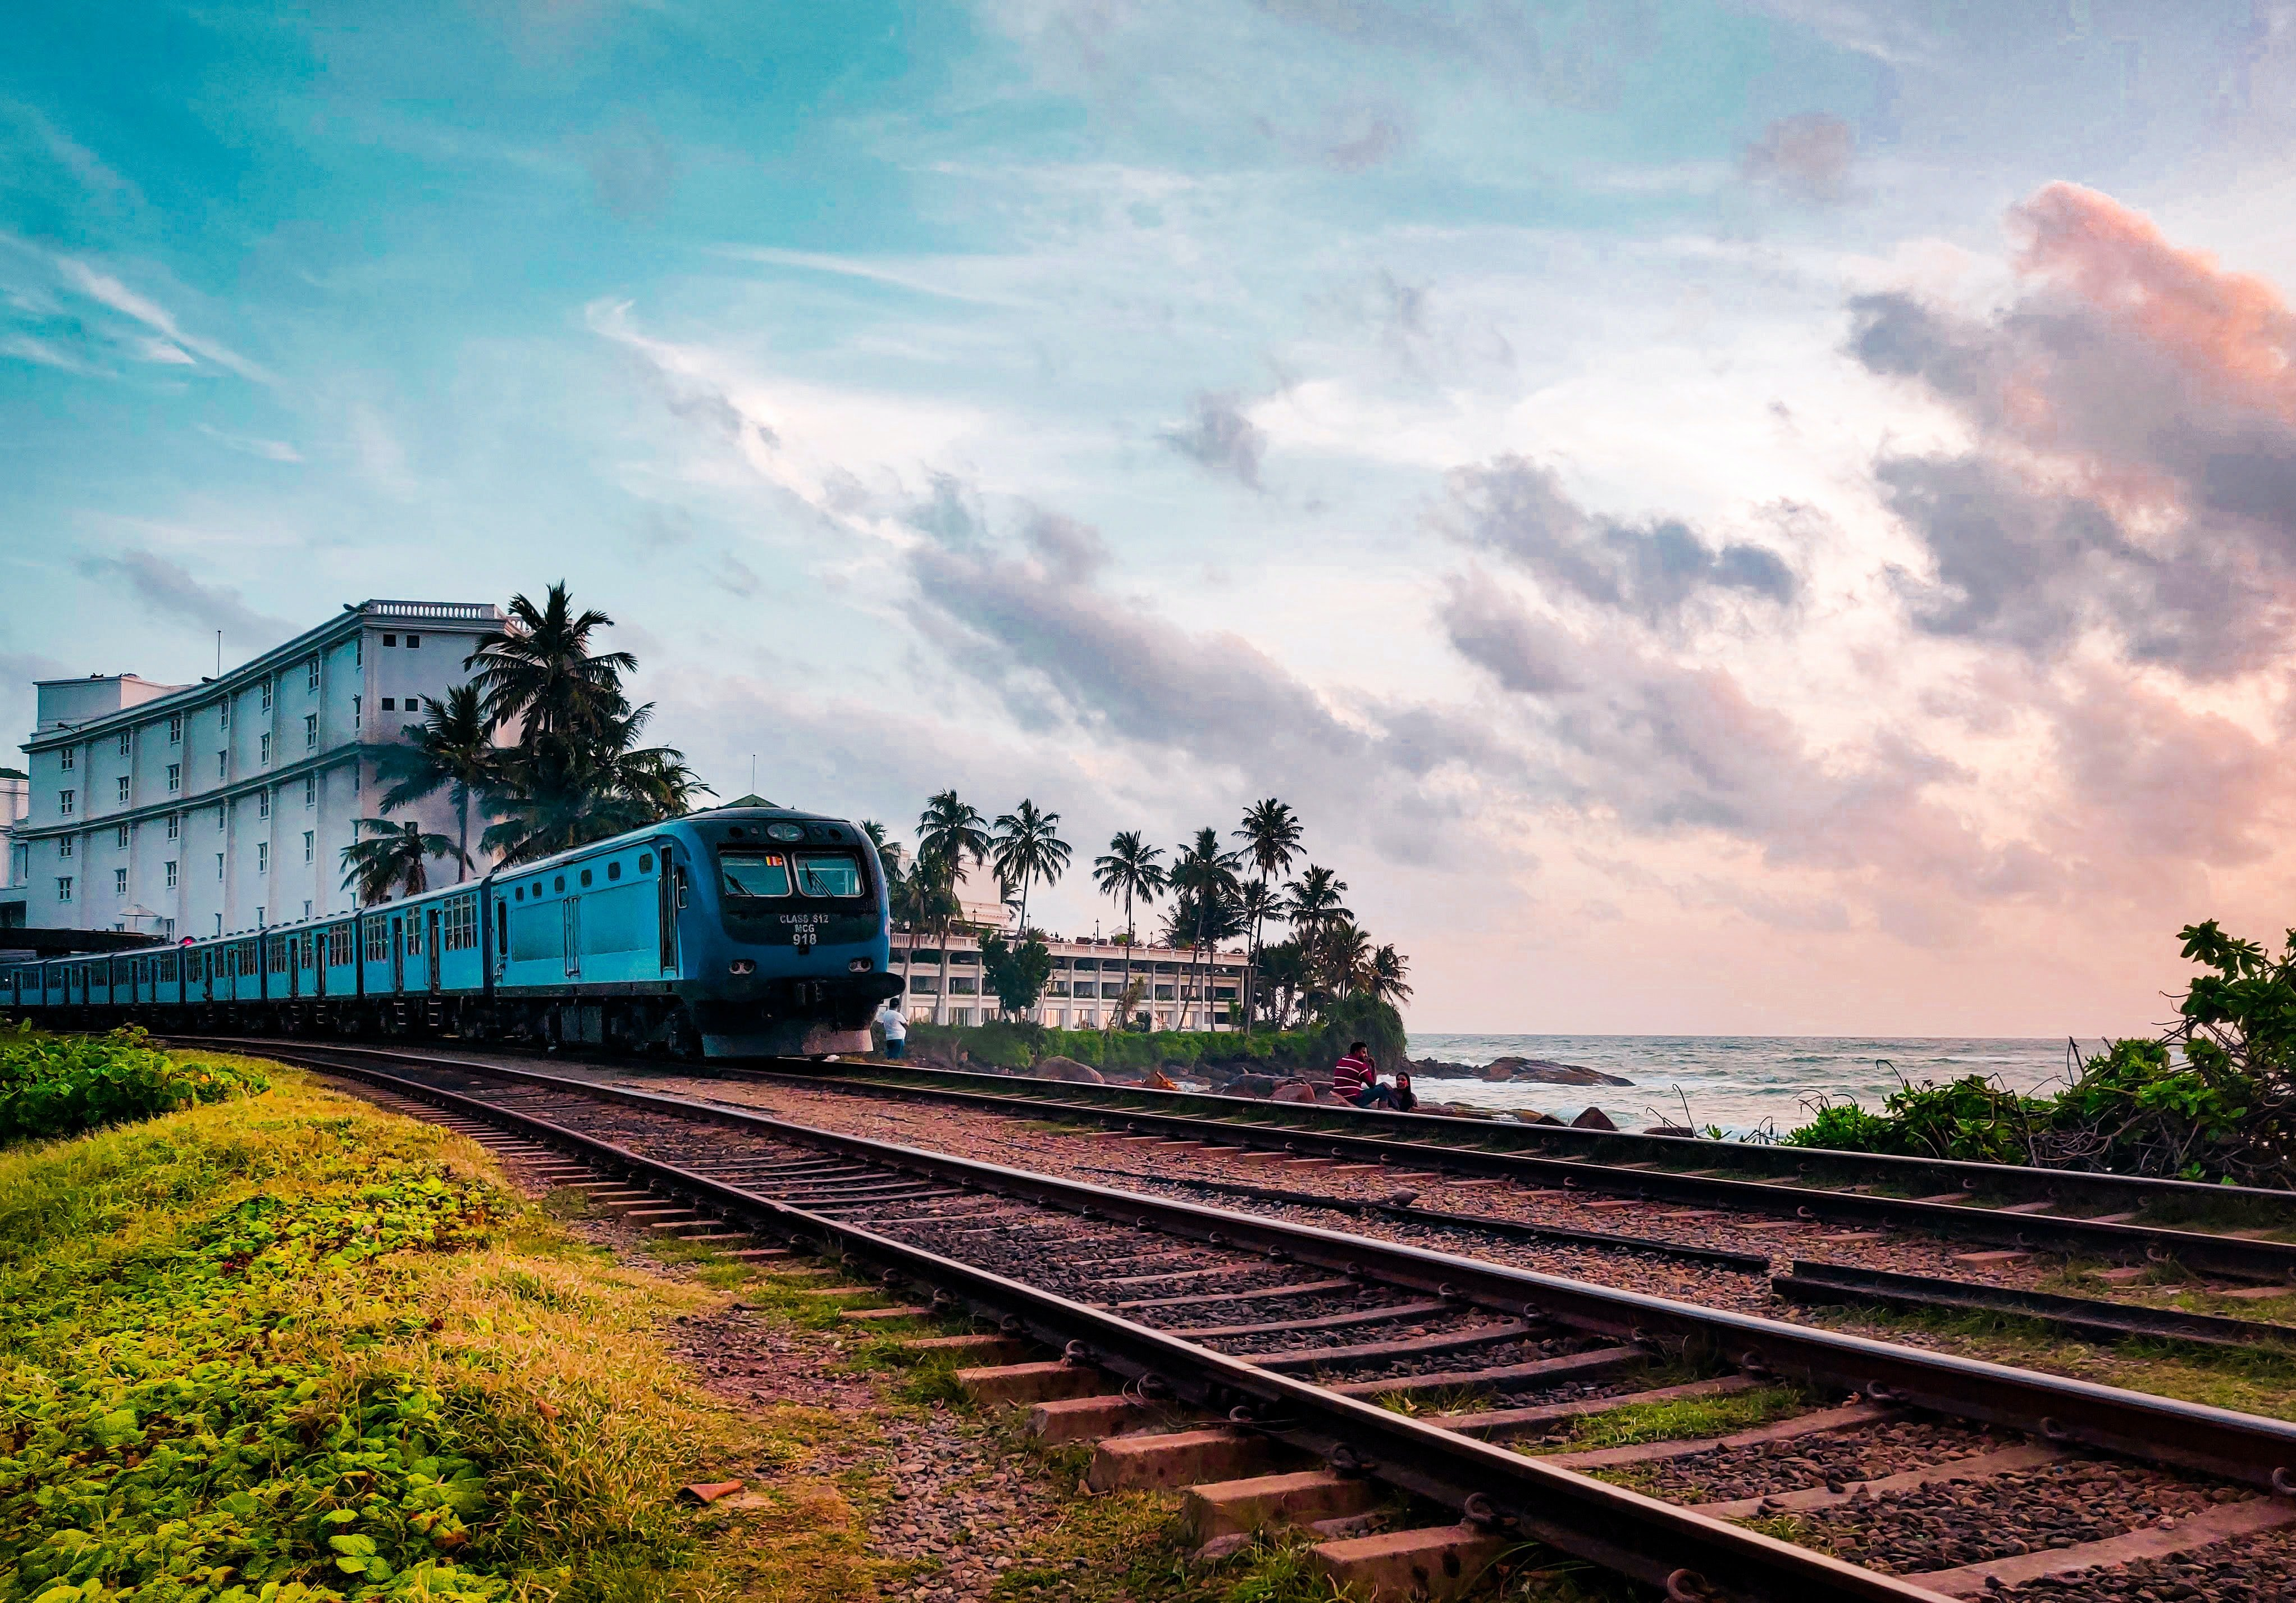 Traveling by train in Sri Lanka is a beautiful way to view the coastlines and countryside